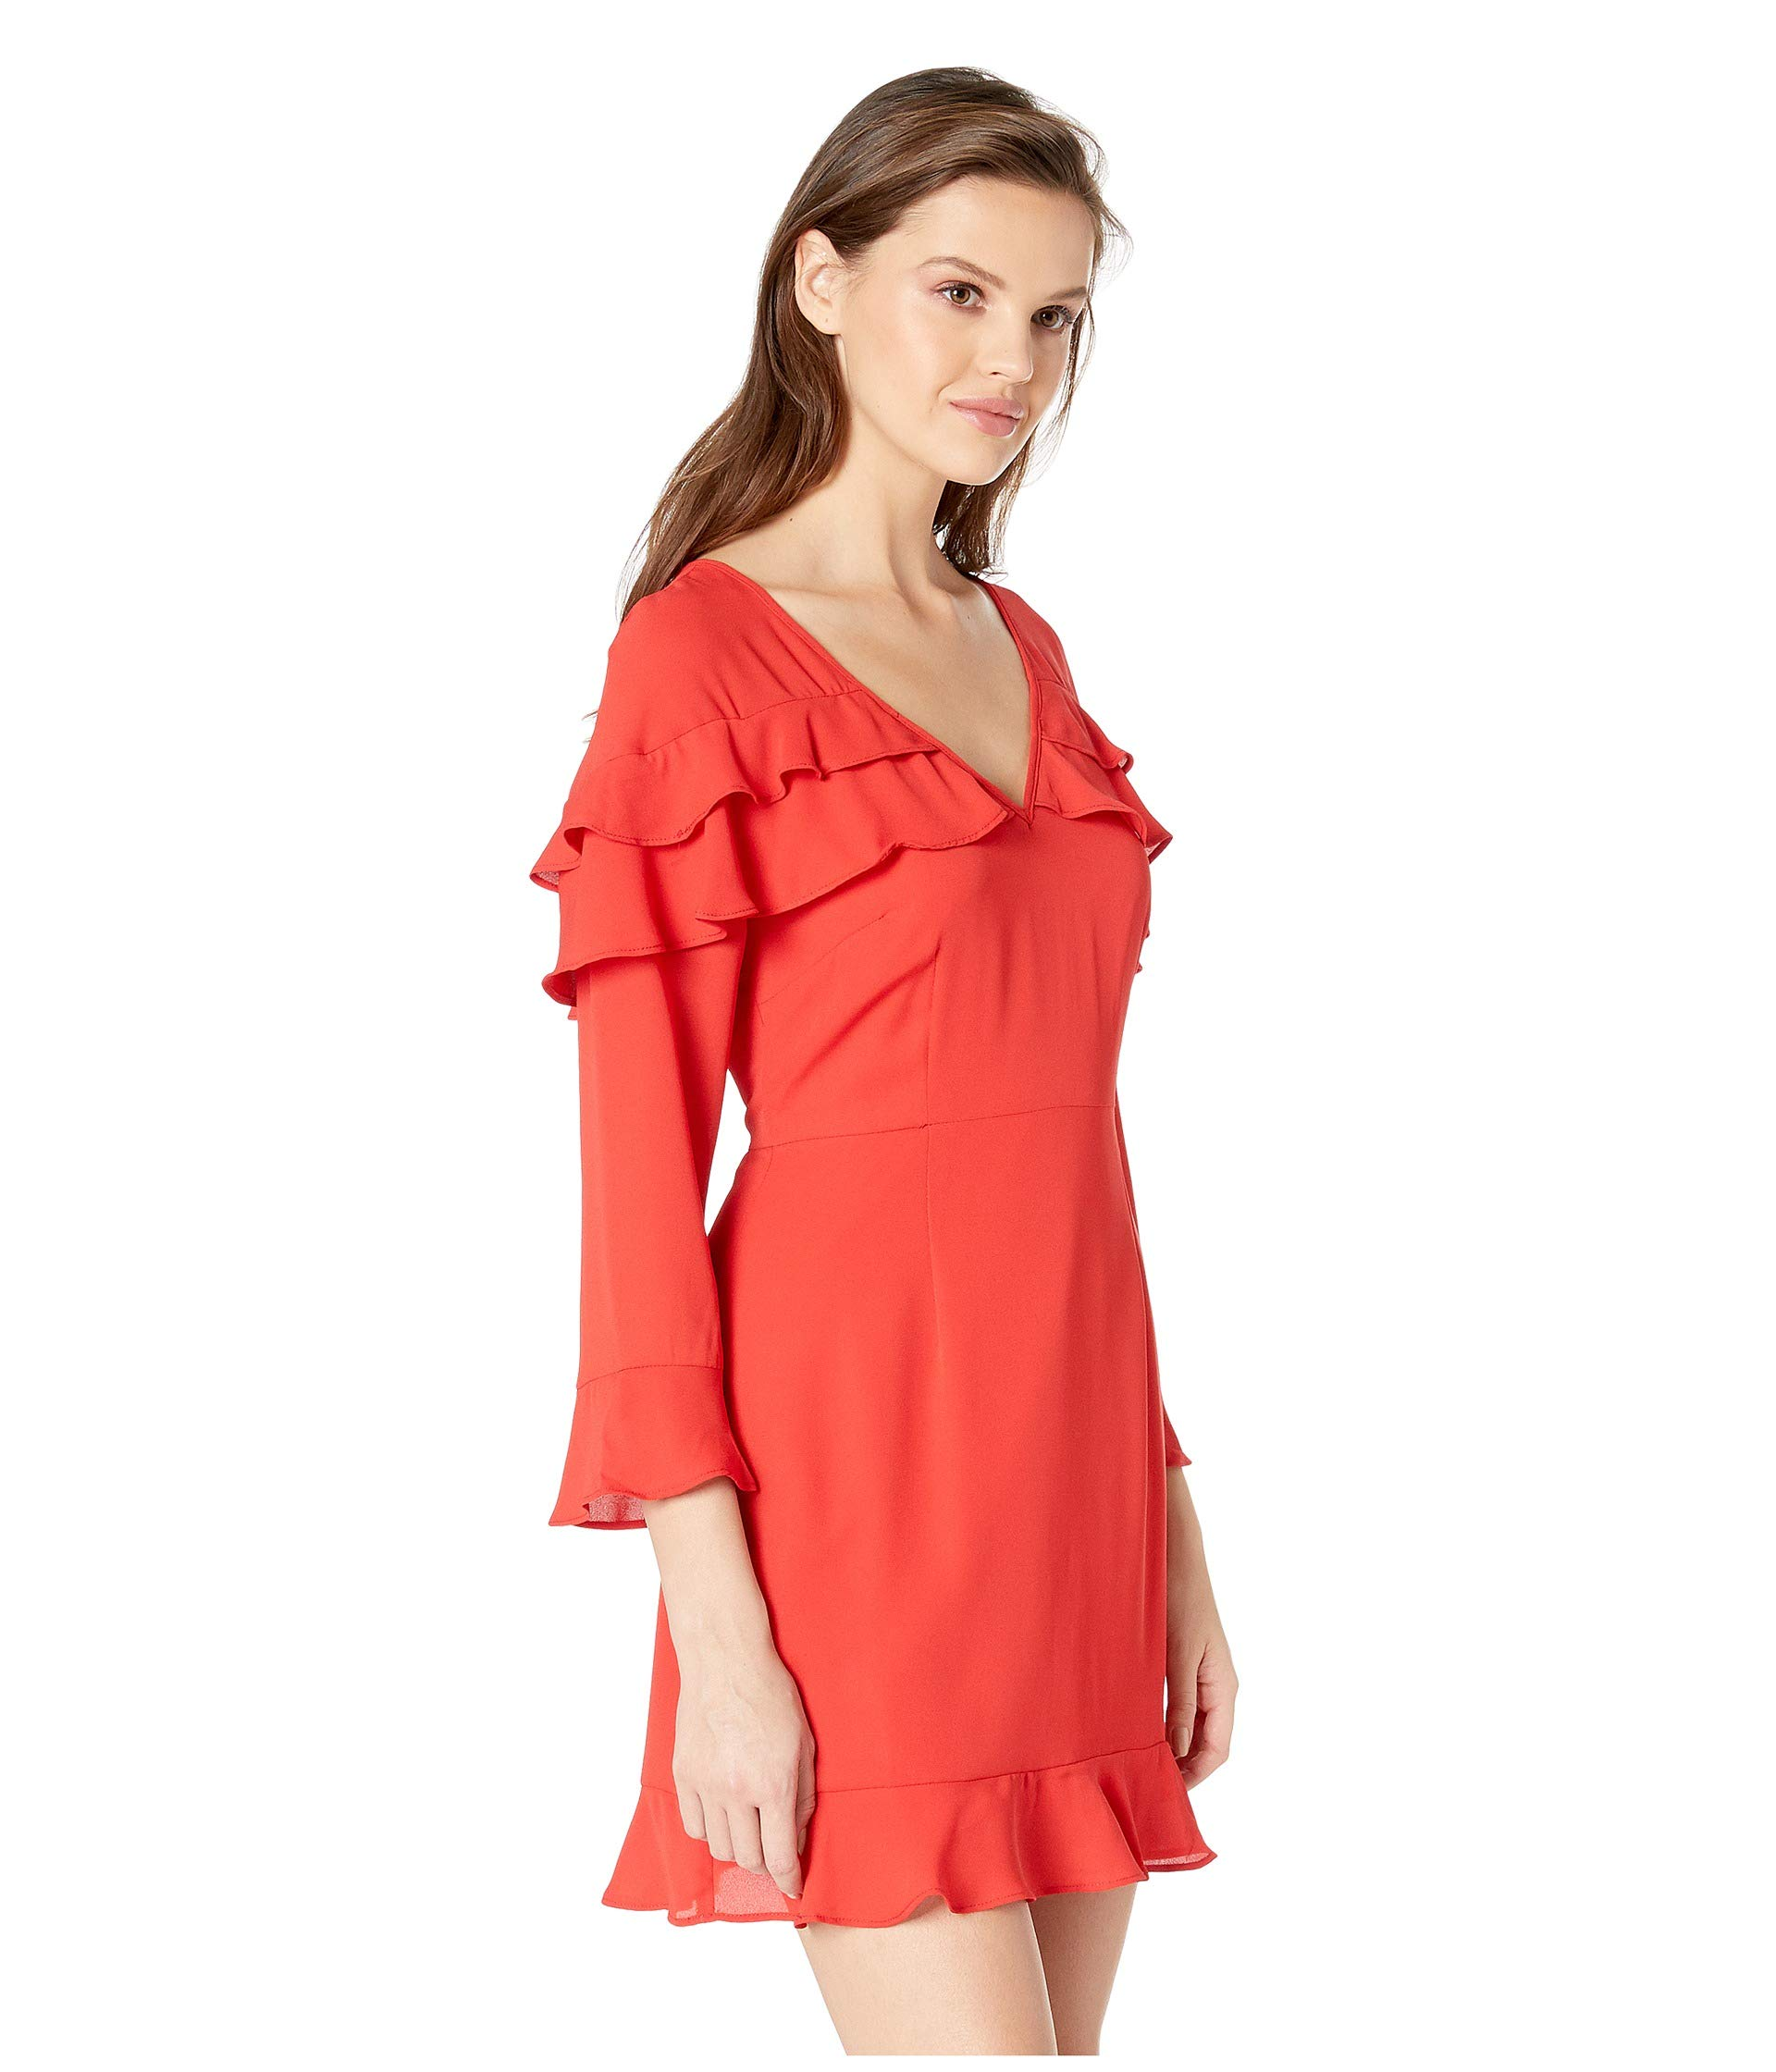 Red De Ruffle Jack Crepe Chine Nightlife Bb Cherry Dakota Dress Love By The x6z04w67q